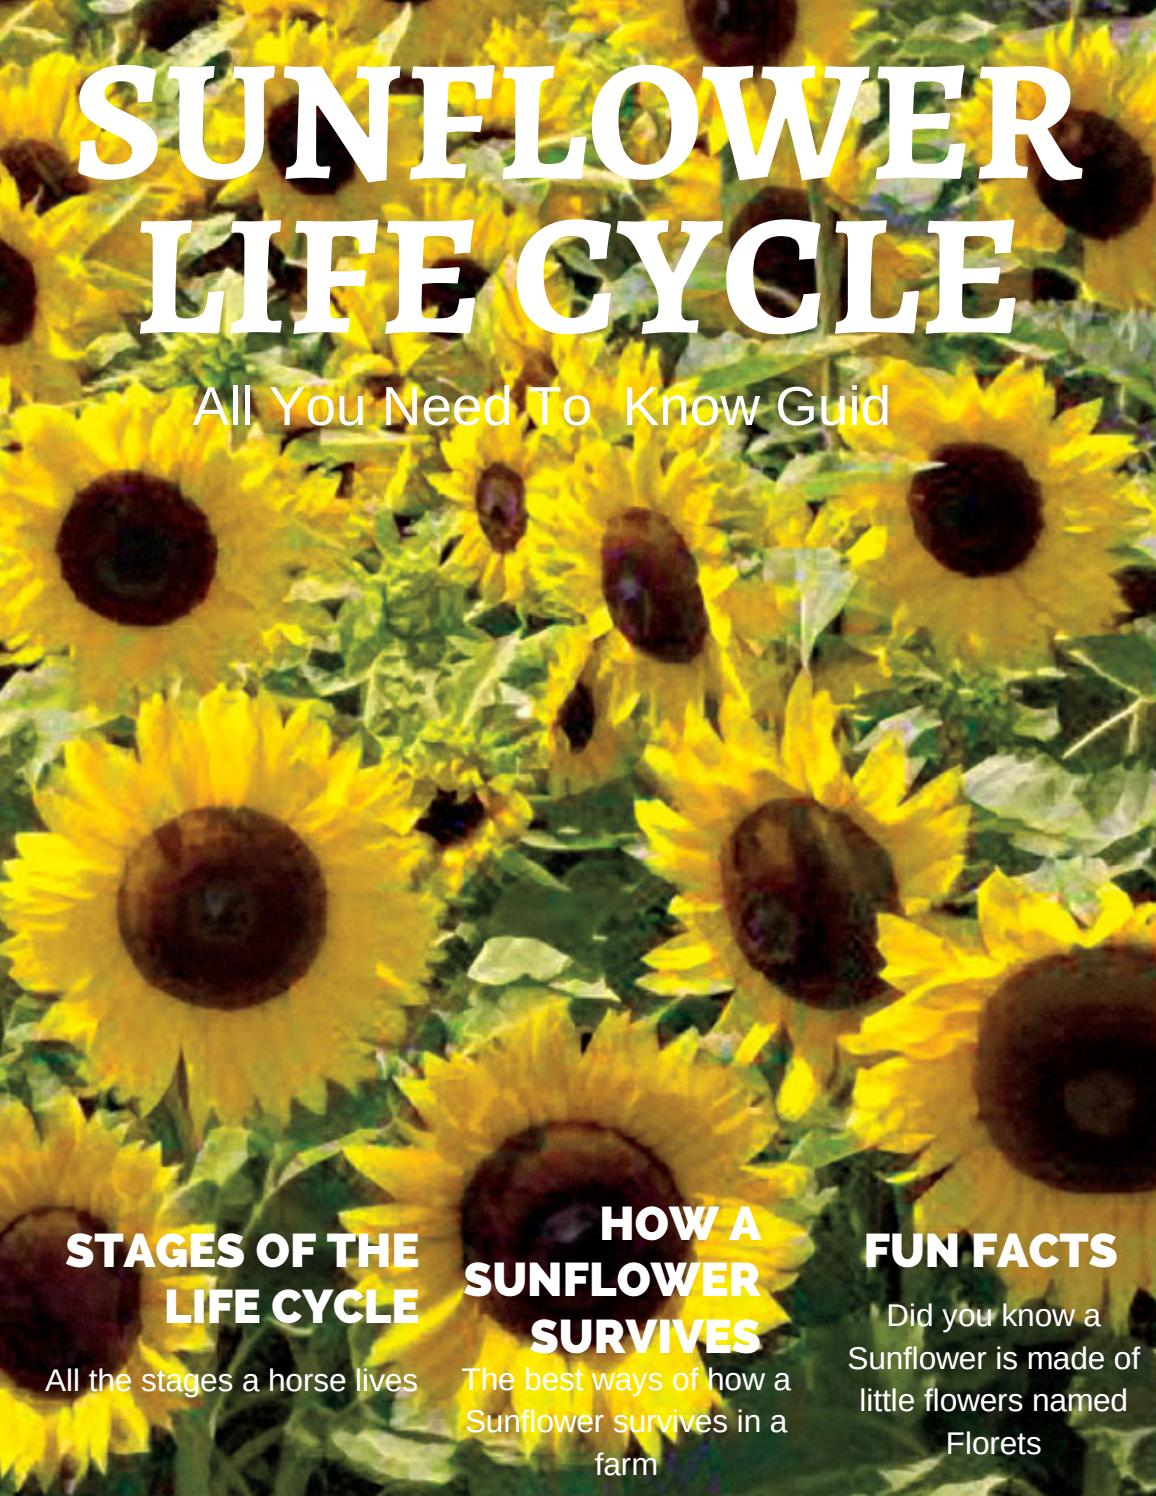 Sunflower Life Cycle By Lennie Vulkan By Shapiron Nvnet Org Issuu